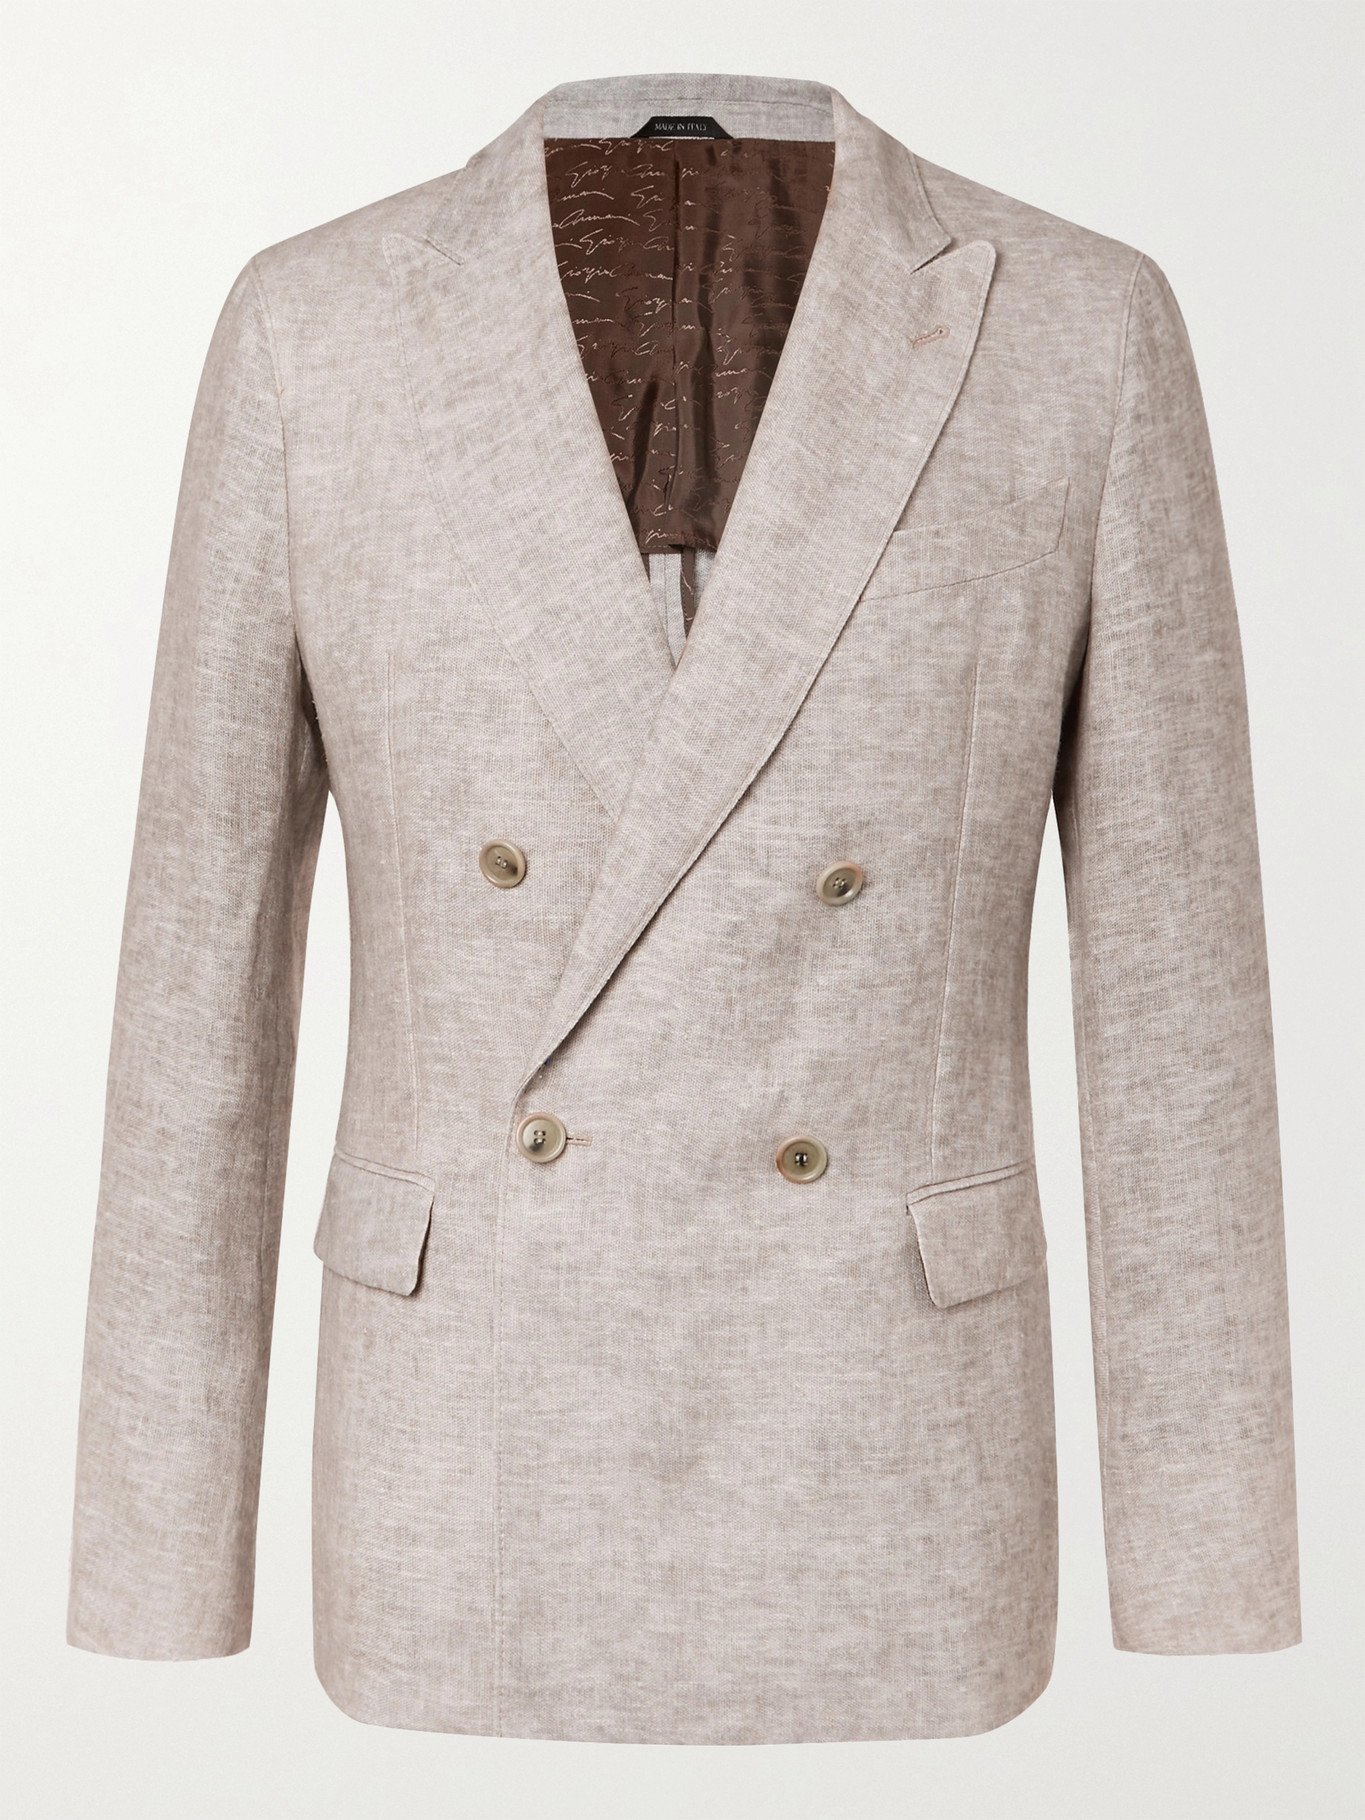 GIORGIO ARMANI - Double-Breasted Mélange Linen Suit Jacket - Gray - IT 46